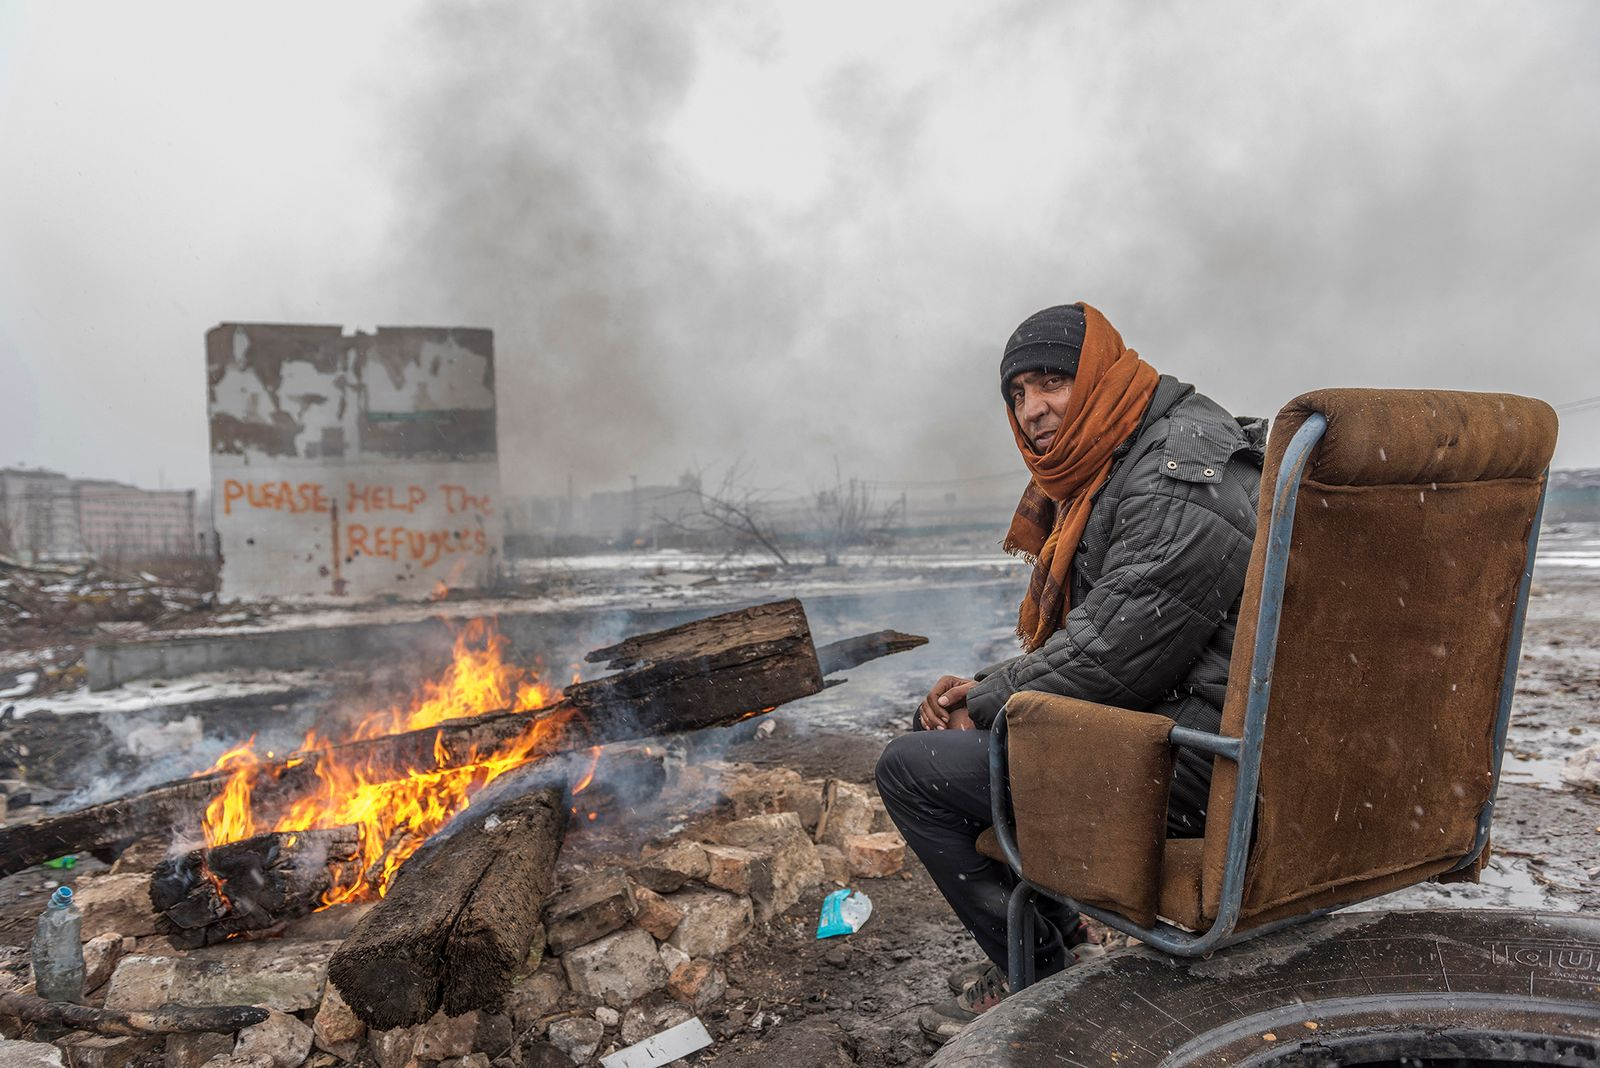 Barracks of Belgrade, a refugee man tries to keep warm